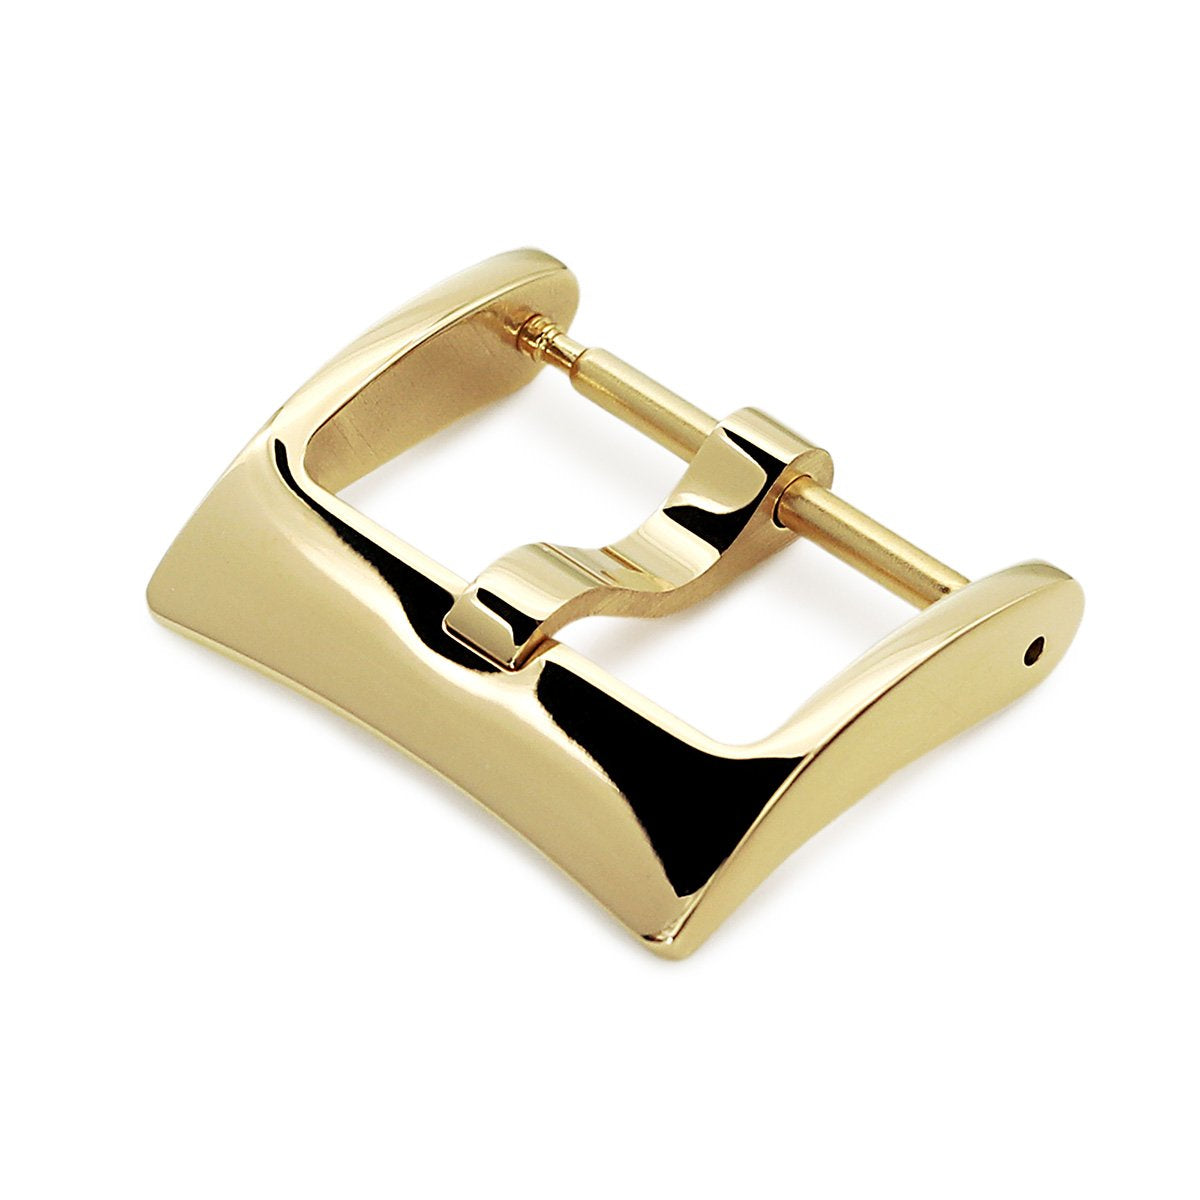 16mm 18mm 20mm #65 Classic Tang Buckle for Leather Watch Strap Polished IP Gold Strapcode Buckles